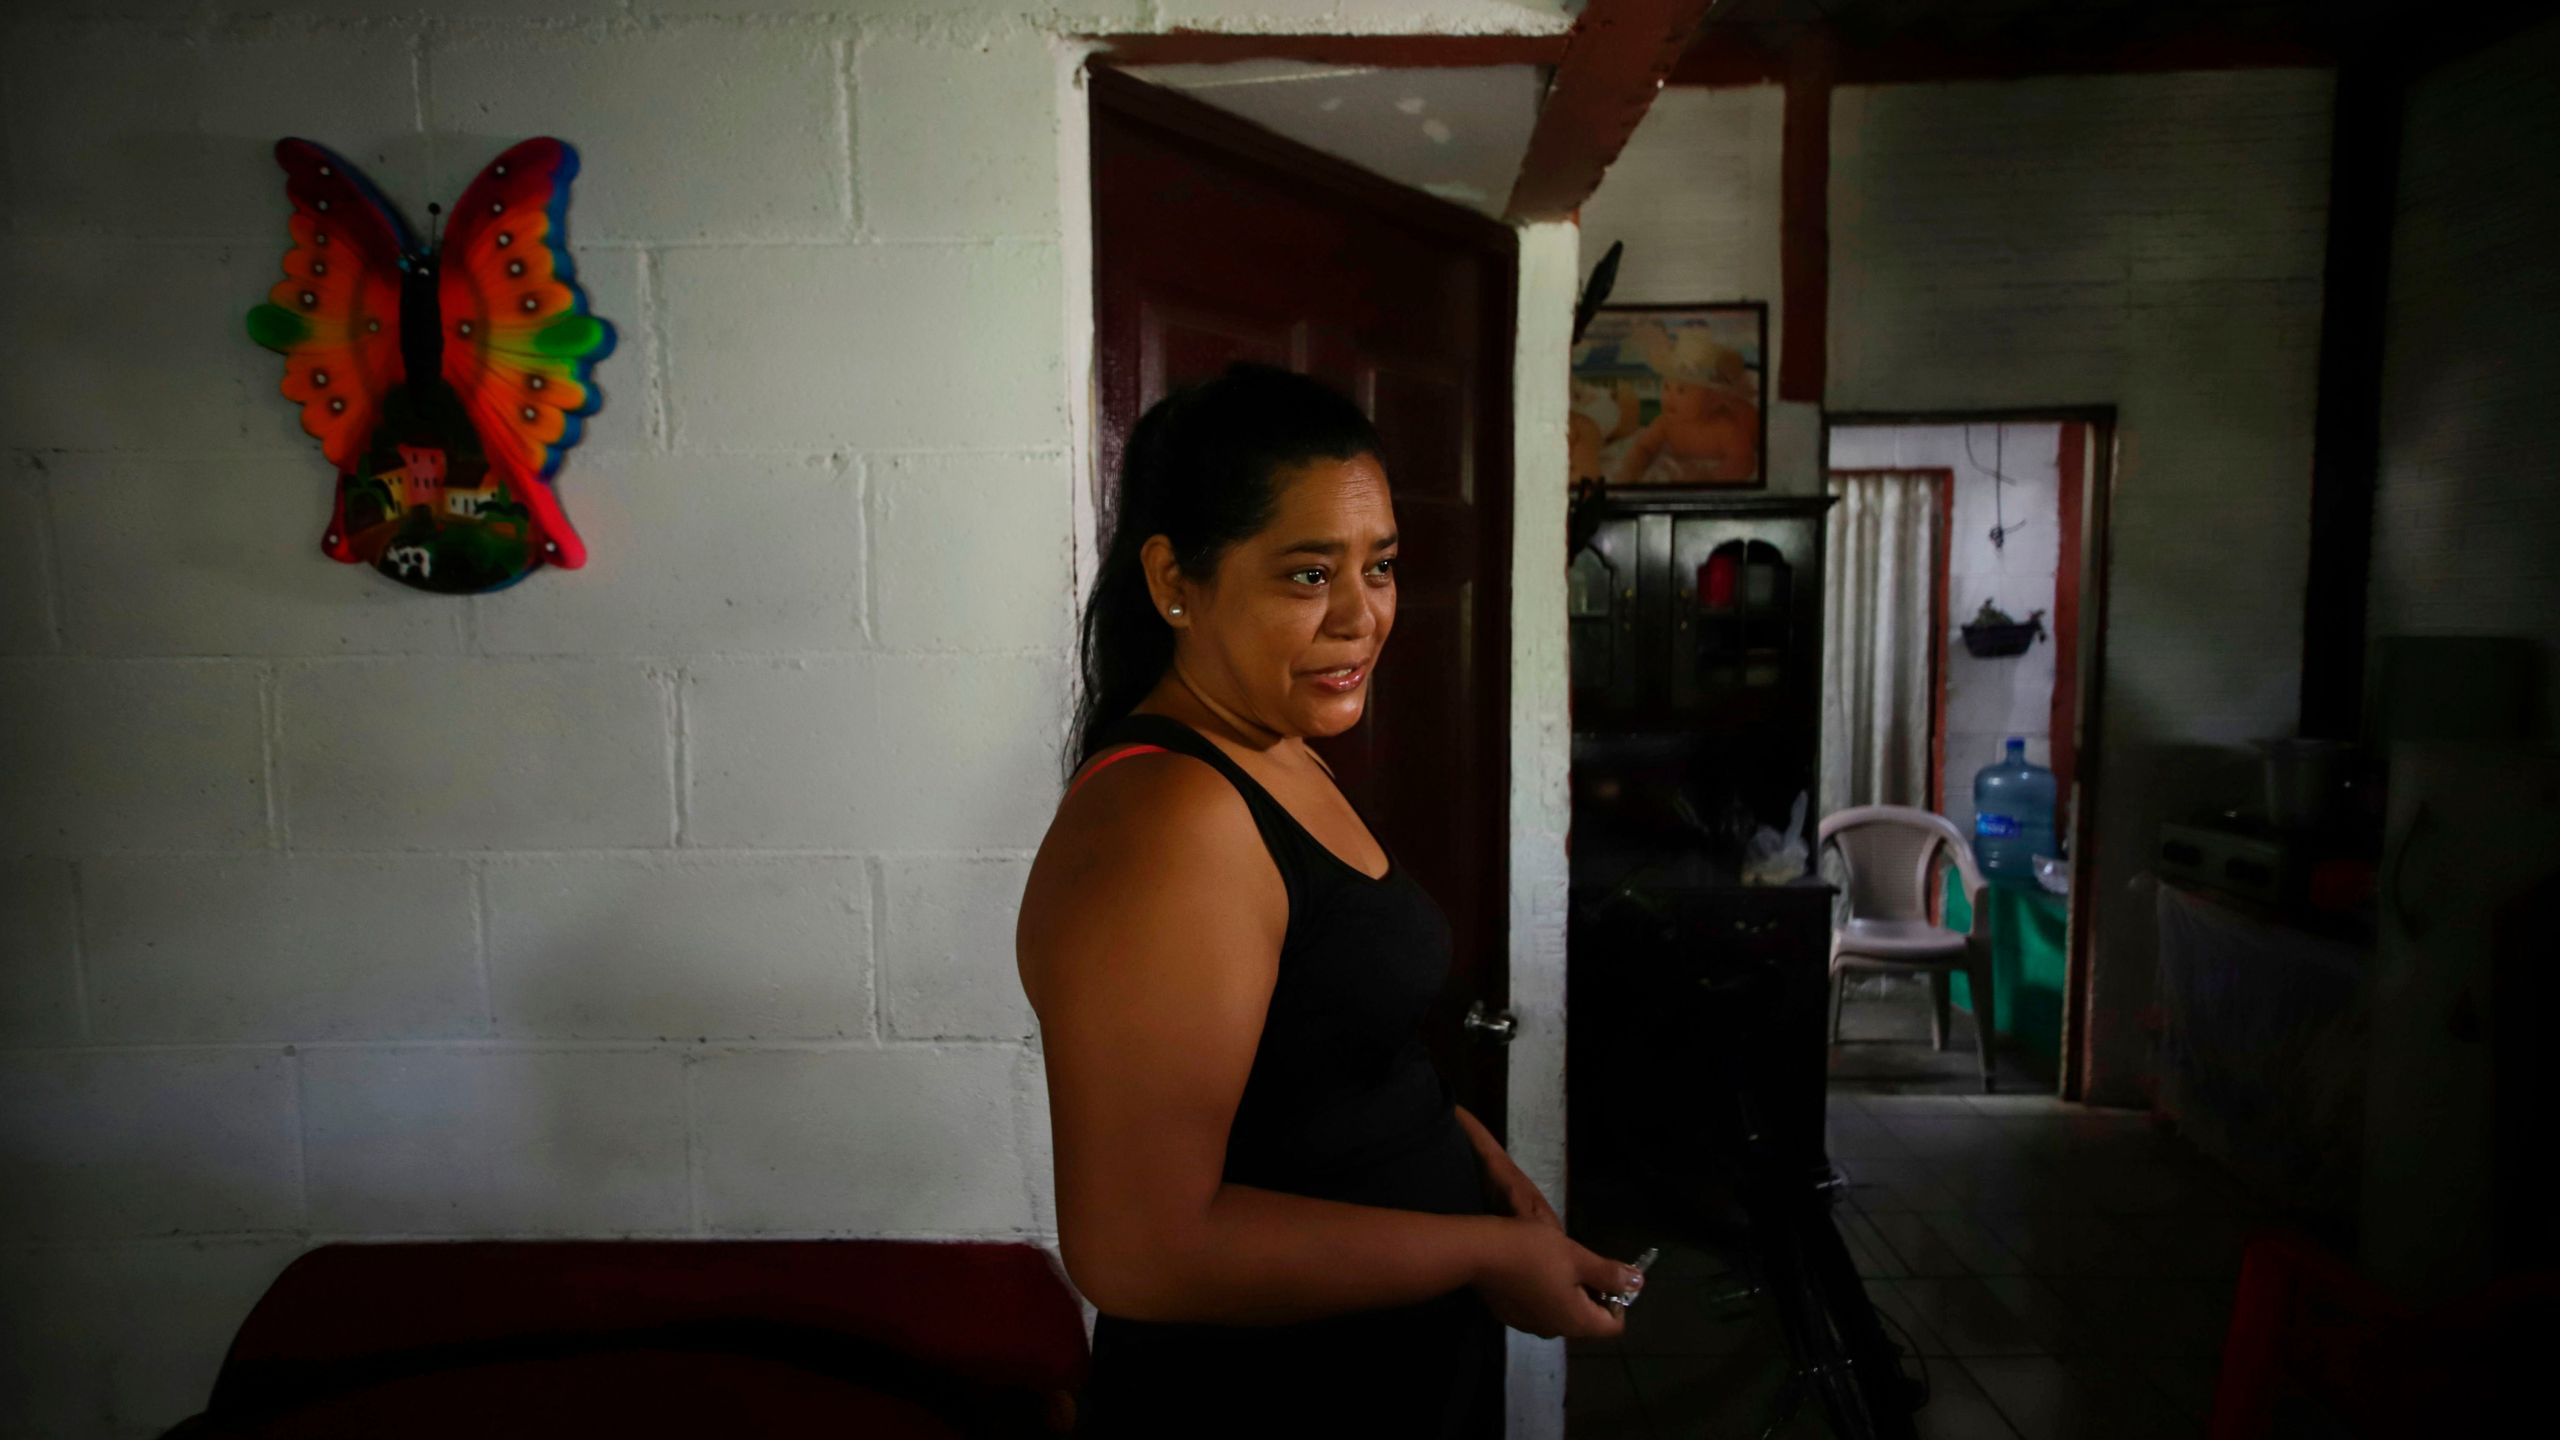 Salvadoran Rosa Ramirez speaks at her home in the populous Alta Vista neighborhood of San Martin, San Salvador municipality, El Salvador, on June 26, 2019. (Credit: Diego Lopez / AFP / Getty Images)